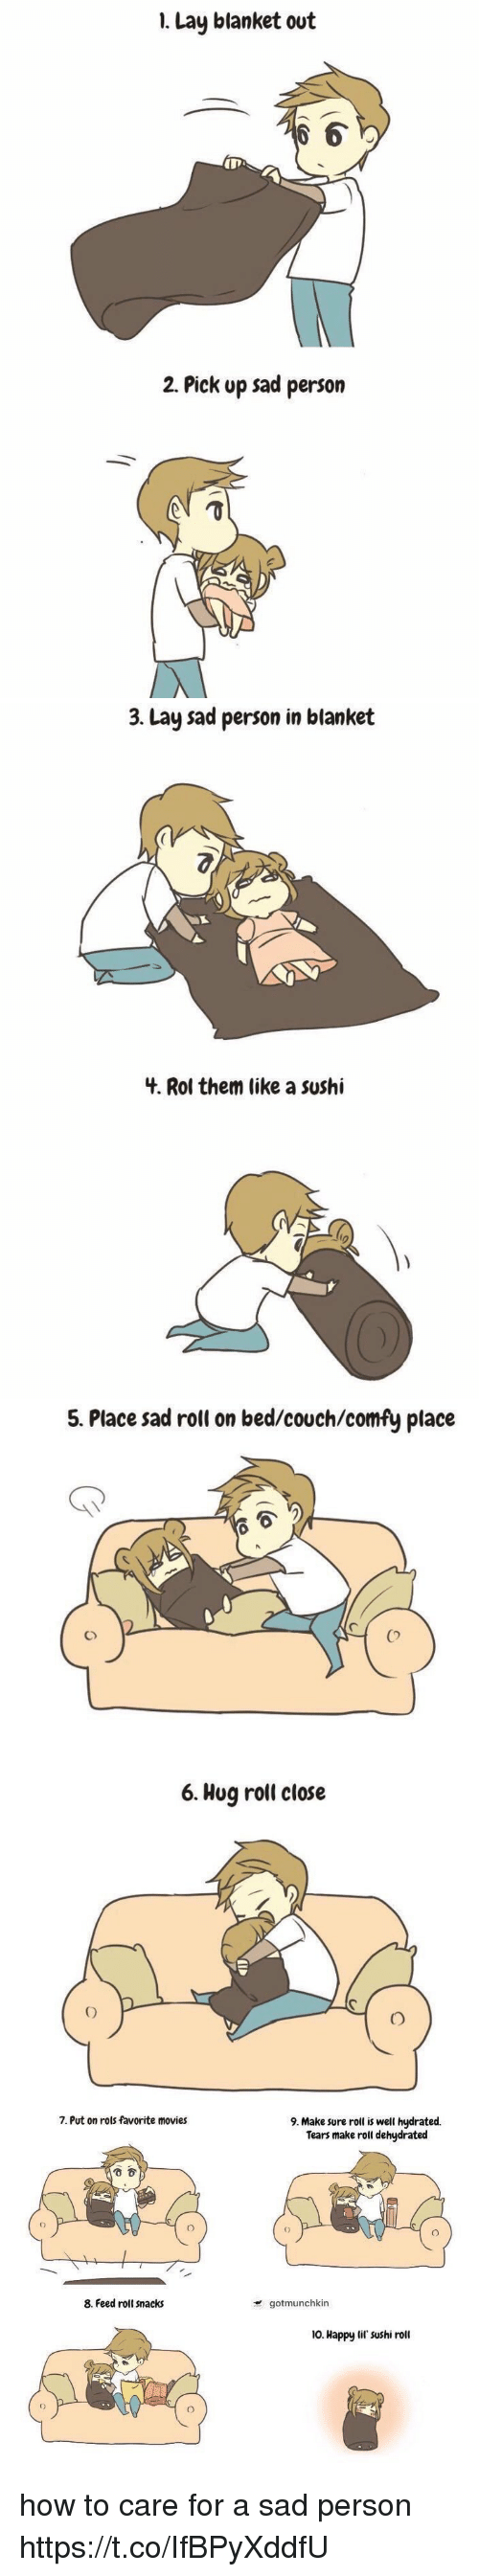 Movies, Couch, and Happy: 1. Lay blanket out  6  2. Pick up sad person   3. Lay sad person in blanket  3.  4. Rol them like a sushi   5. Place sad roll on bed/couch/comfy place  Co  6. Hug roll close   7. Put on rols favorite movies  9. Make sure roll is well hydrated.  Tears make roll dehydrated  8. Feed roll snacks  gotmunchkin  o. Happy lif' sushi roll  0 how to care for a sad person https://t.co/IfBPyXddfU